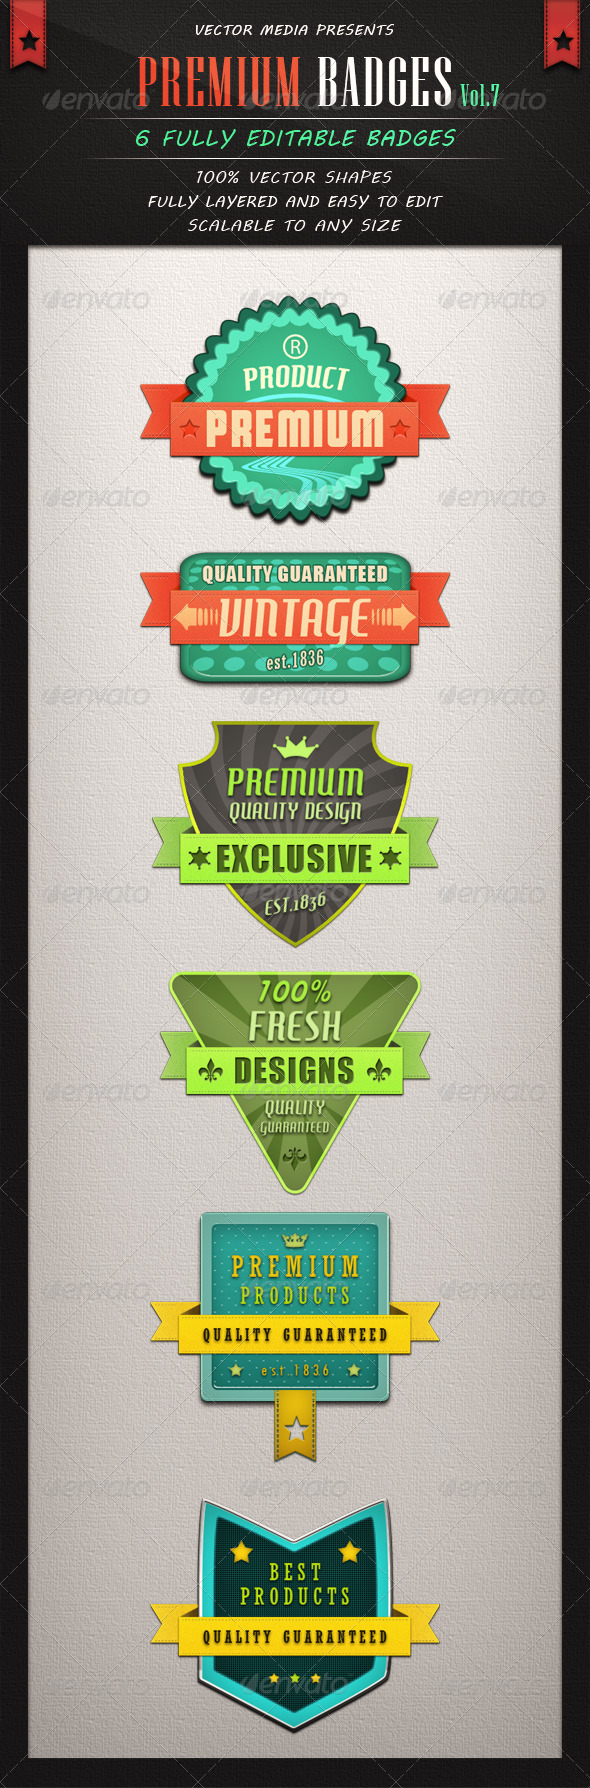 Premium Badges - Vol.7 - Badges & Stickers Web Elements